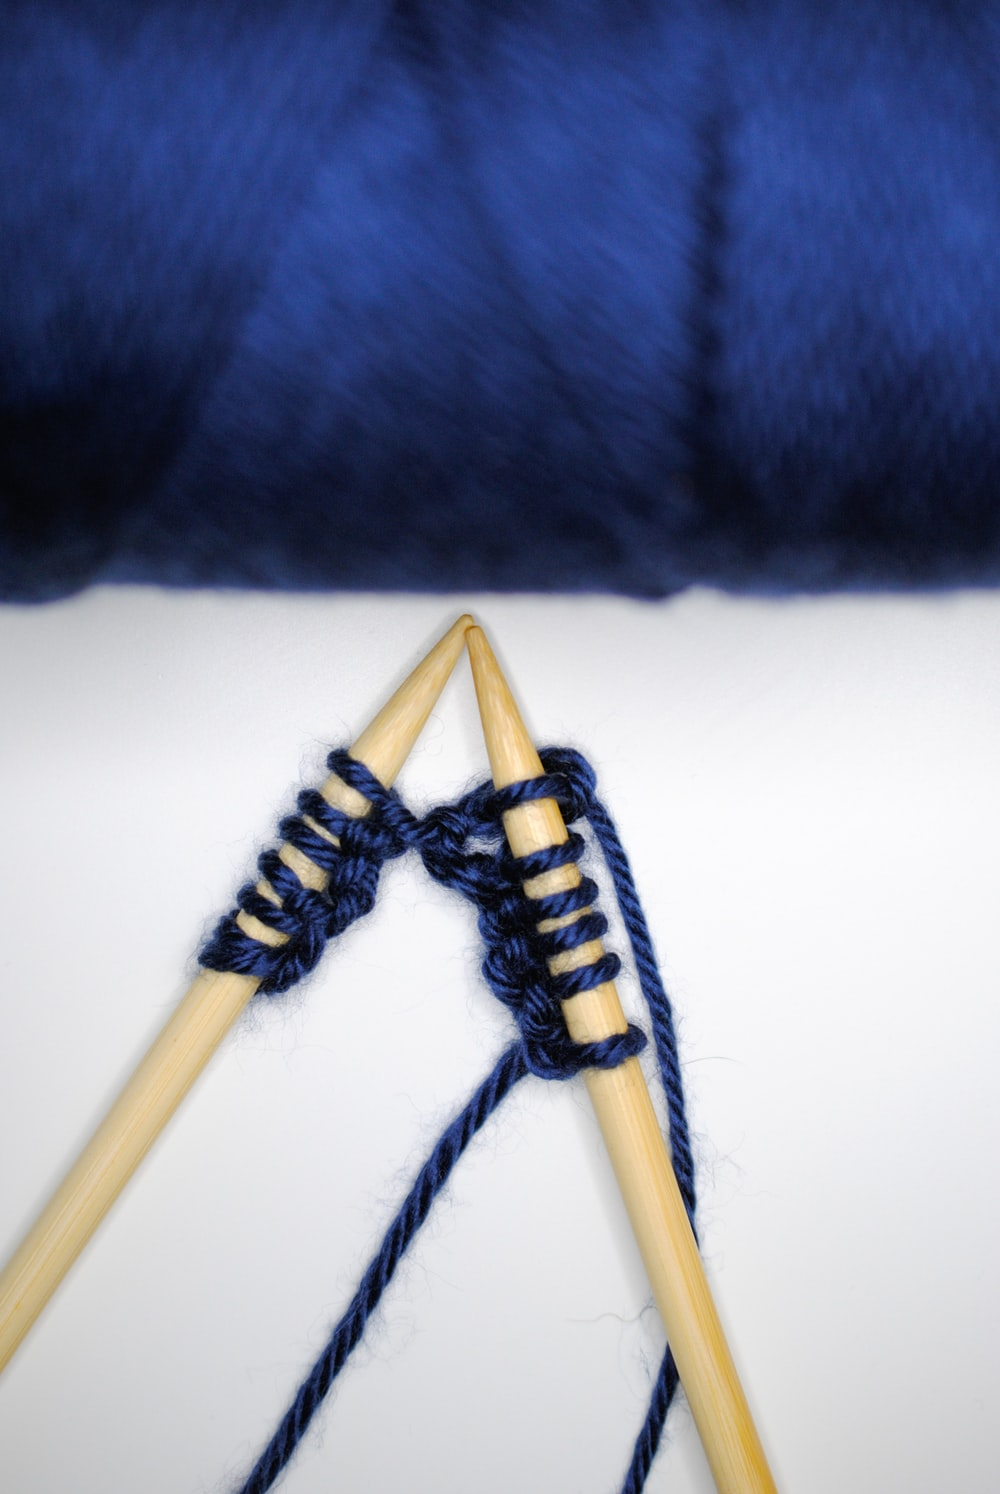 black and yellow rope on white textile